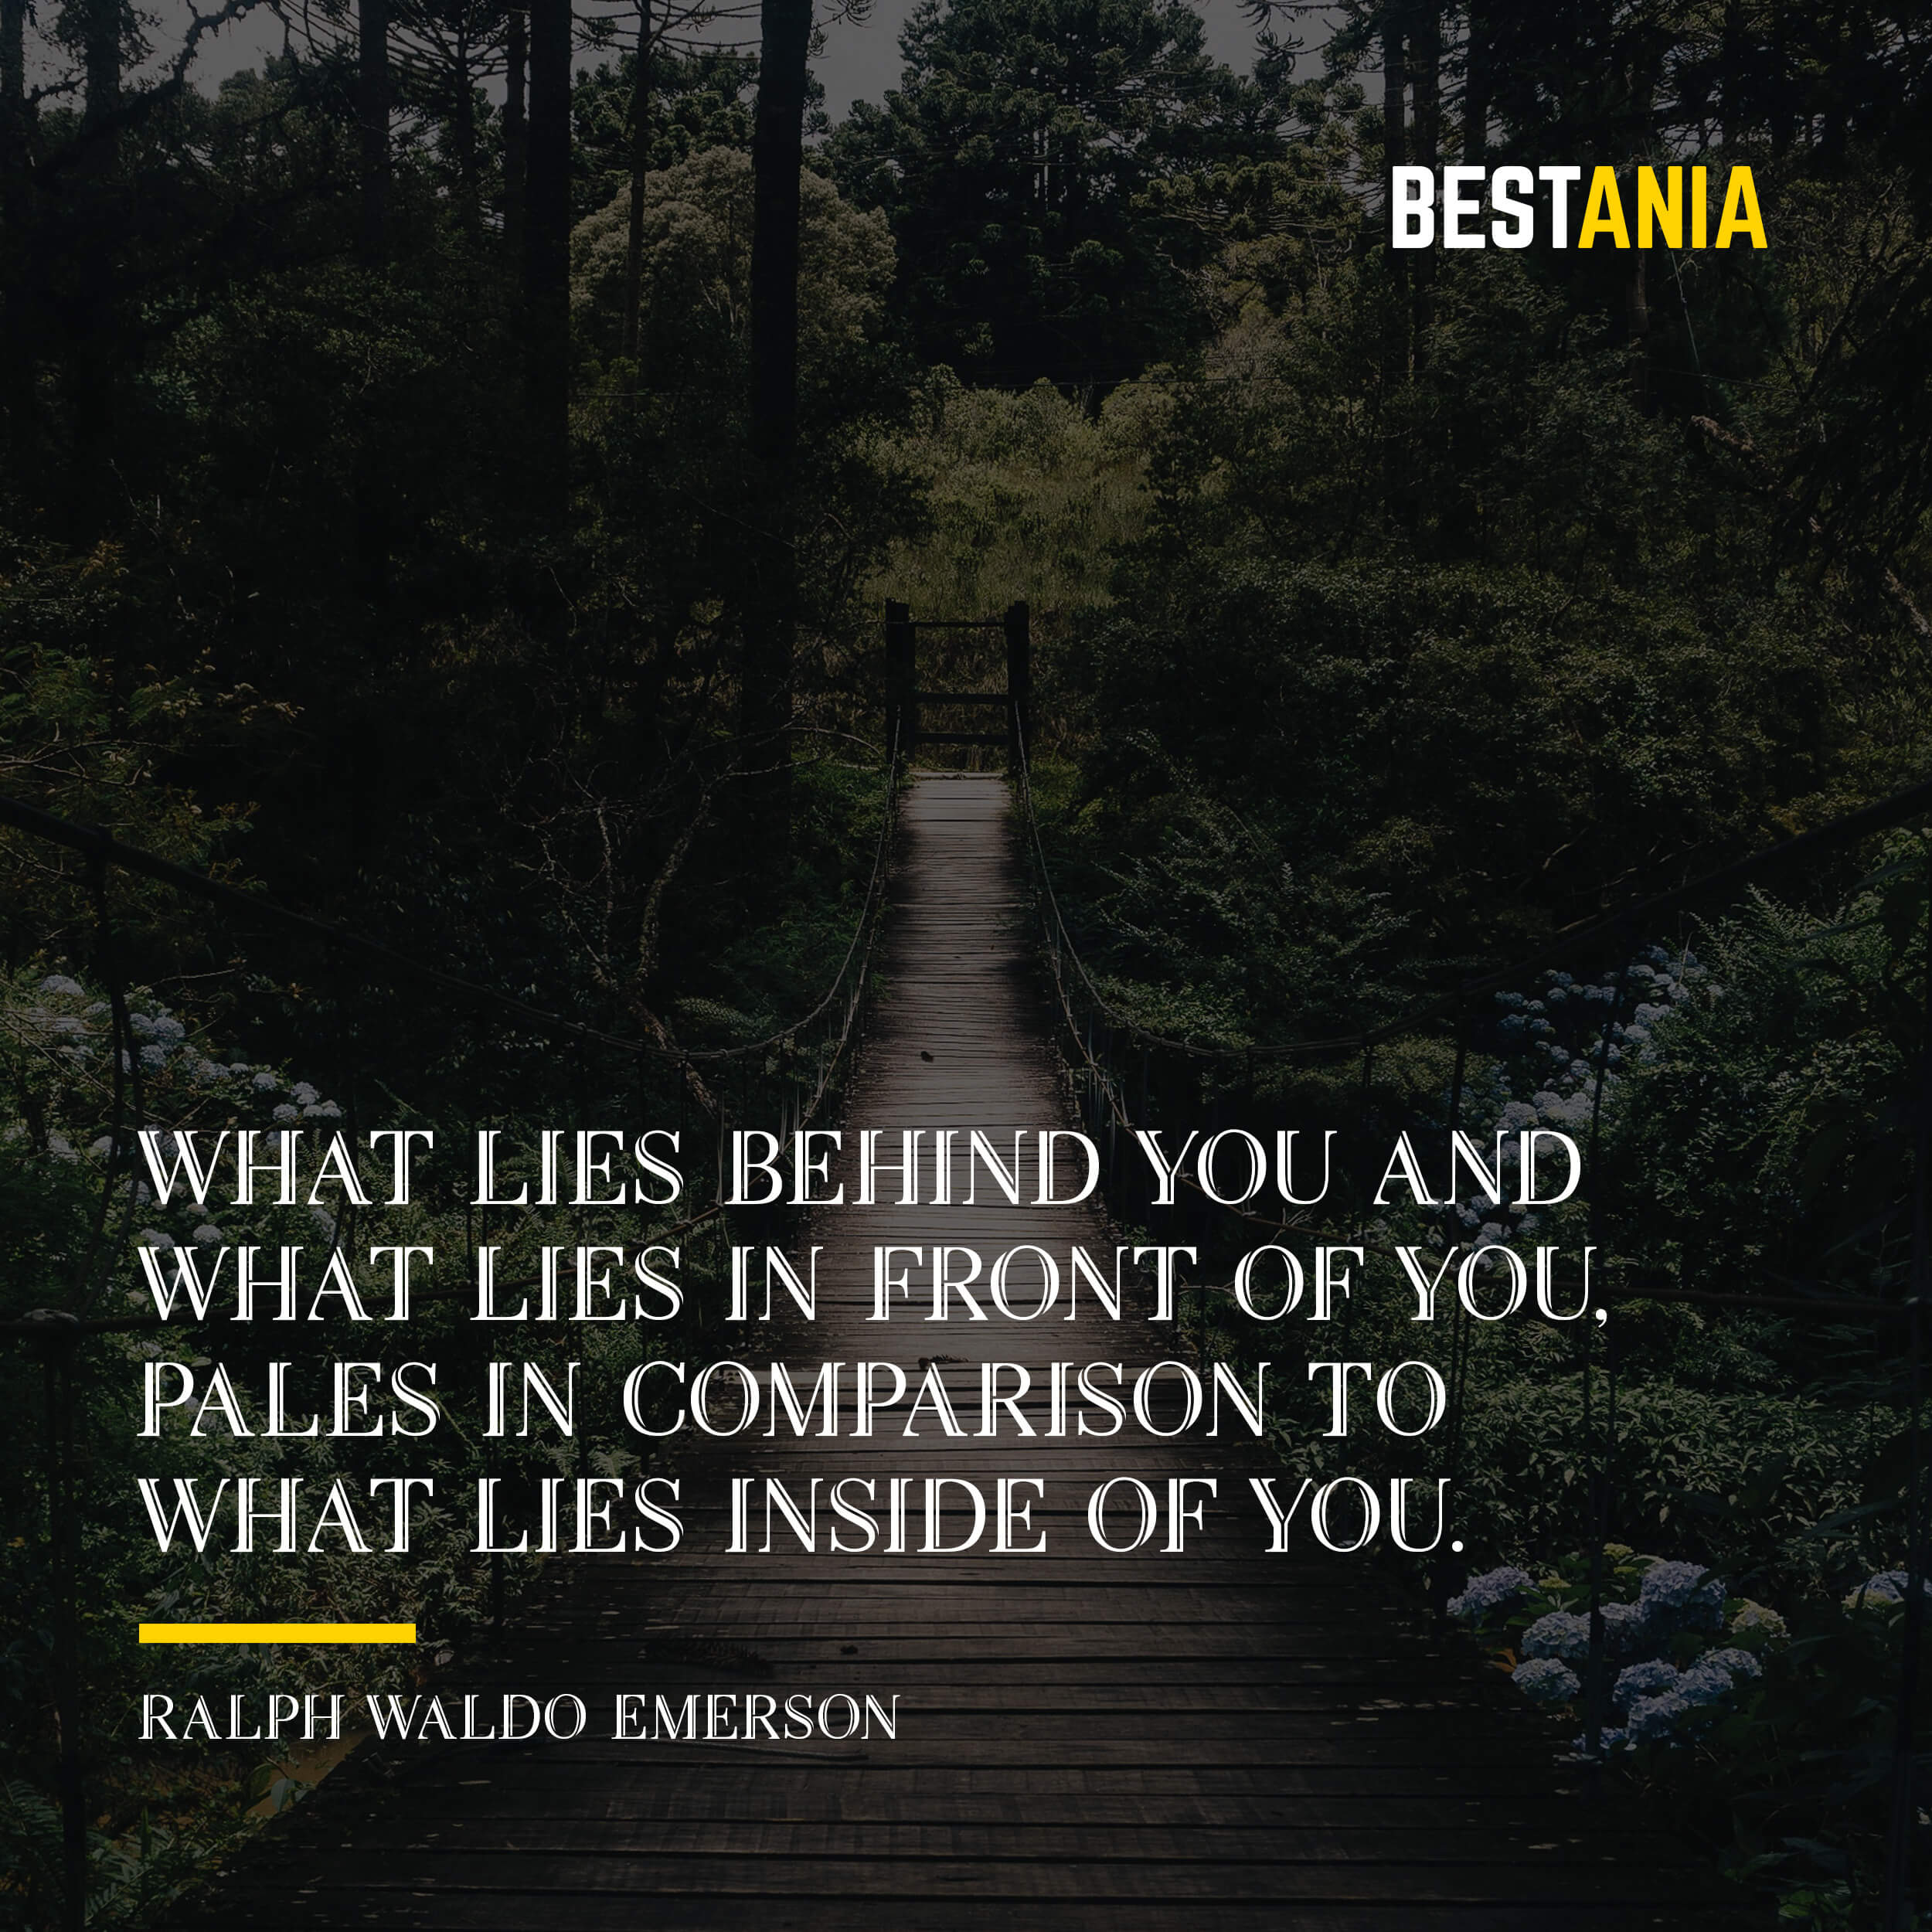 """WHAT LIES BEHIND YOU AND WHAT LIES IN FRONT OF YOU, PALES IN COMPARISON TO WHAT LIES INSIDE OF YOU."" RALPH WALDO EMERSON"